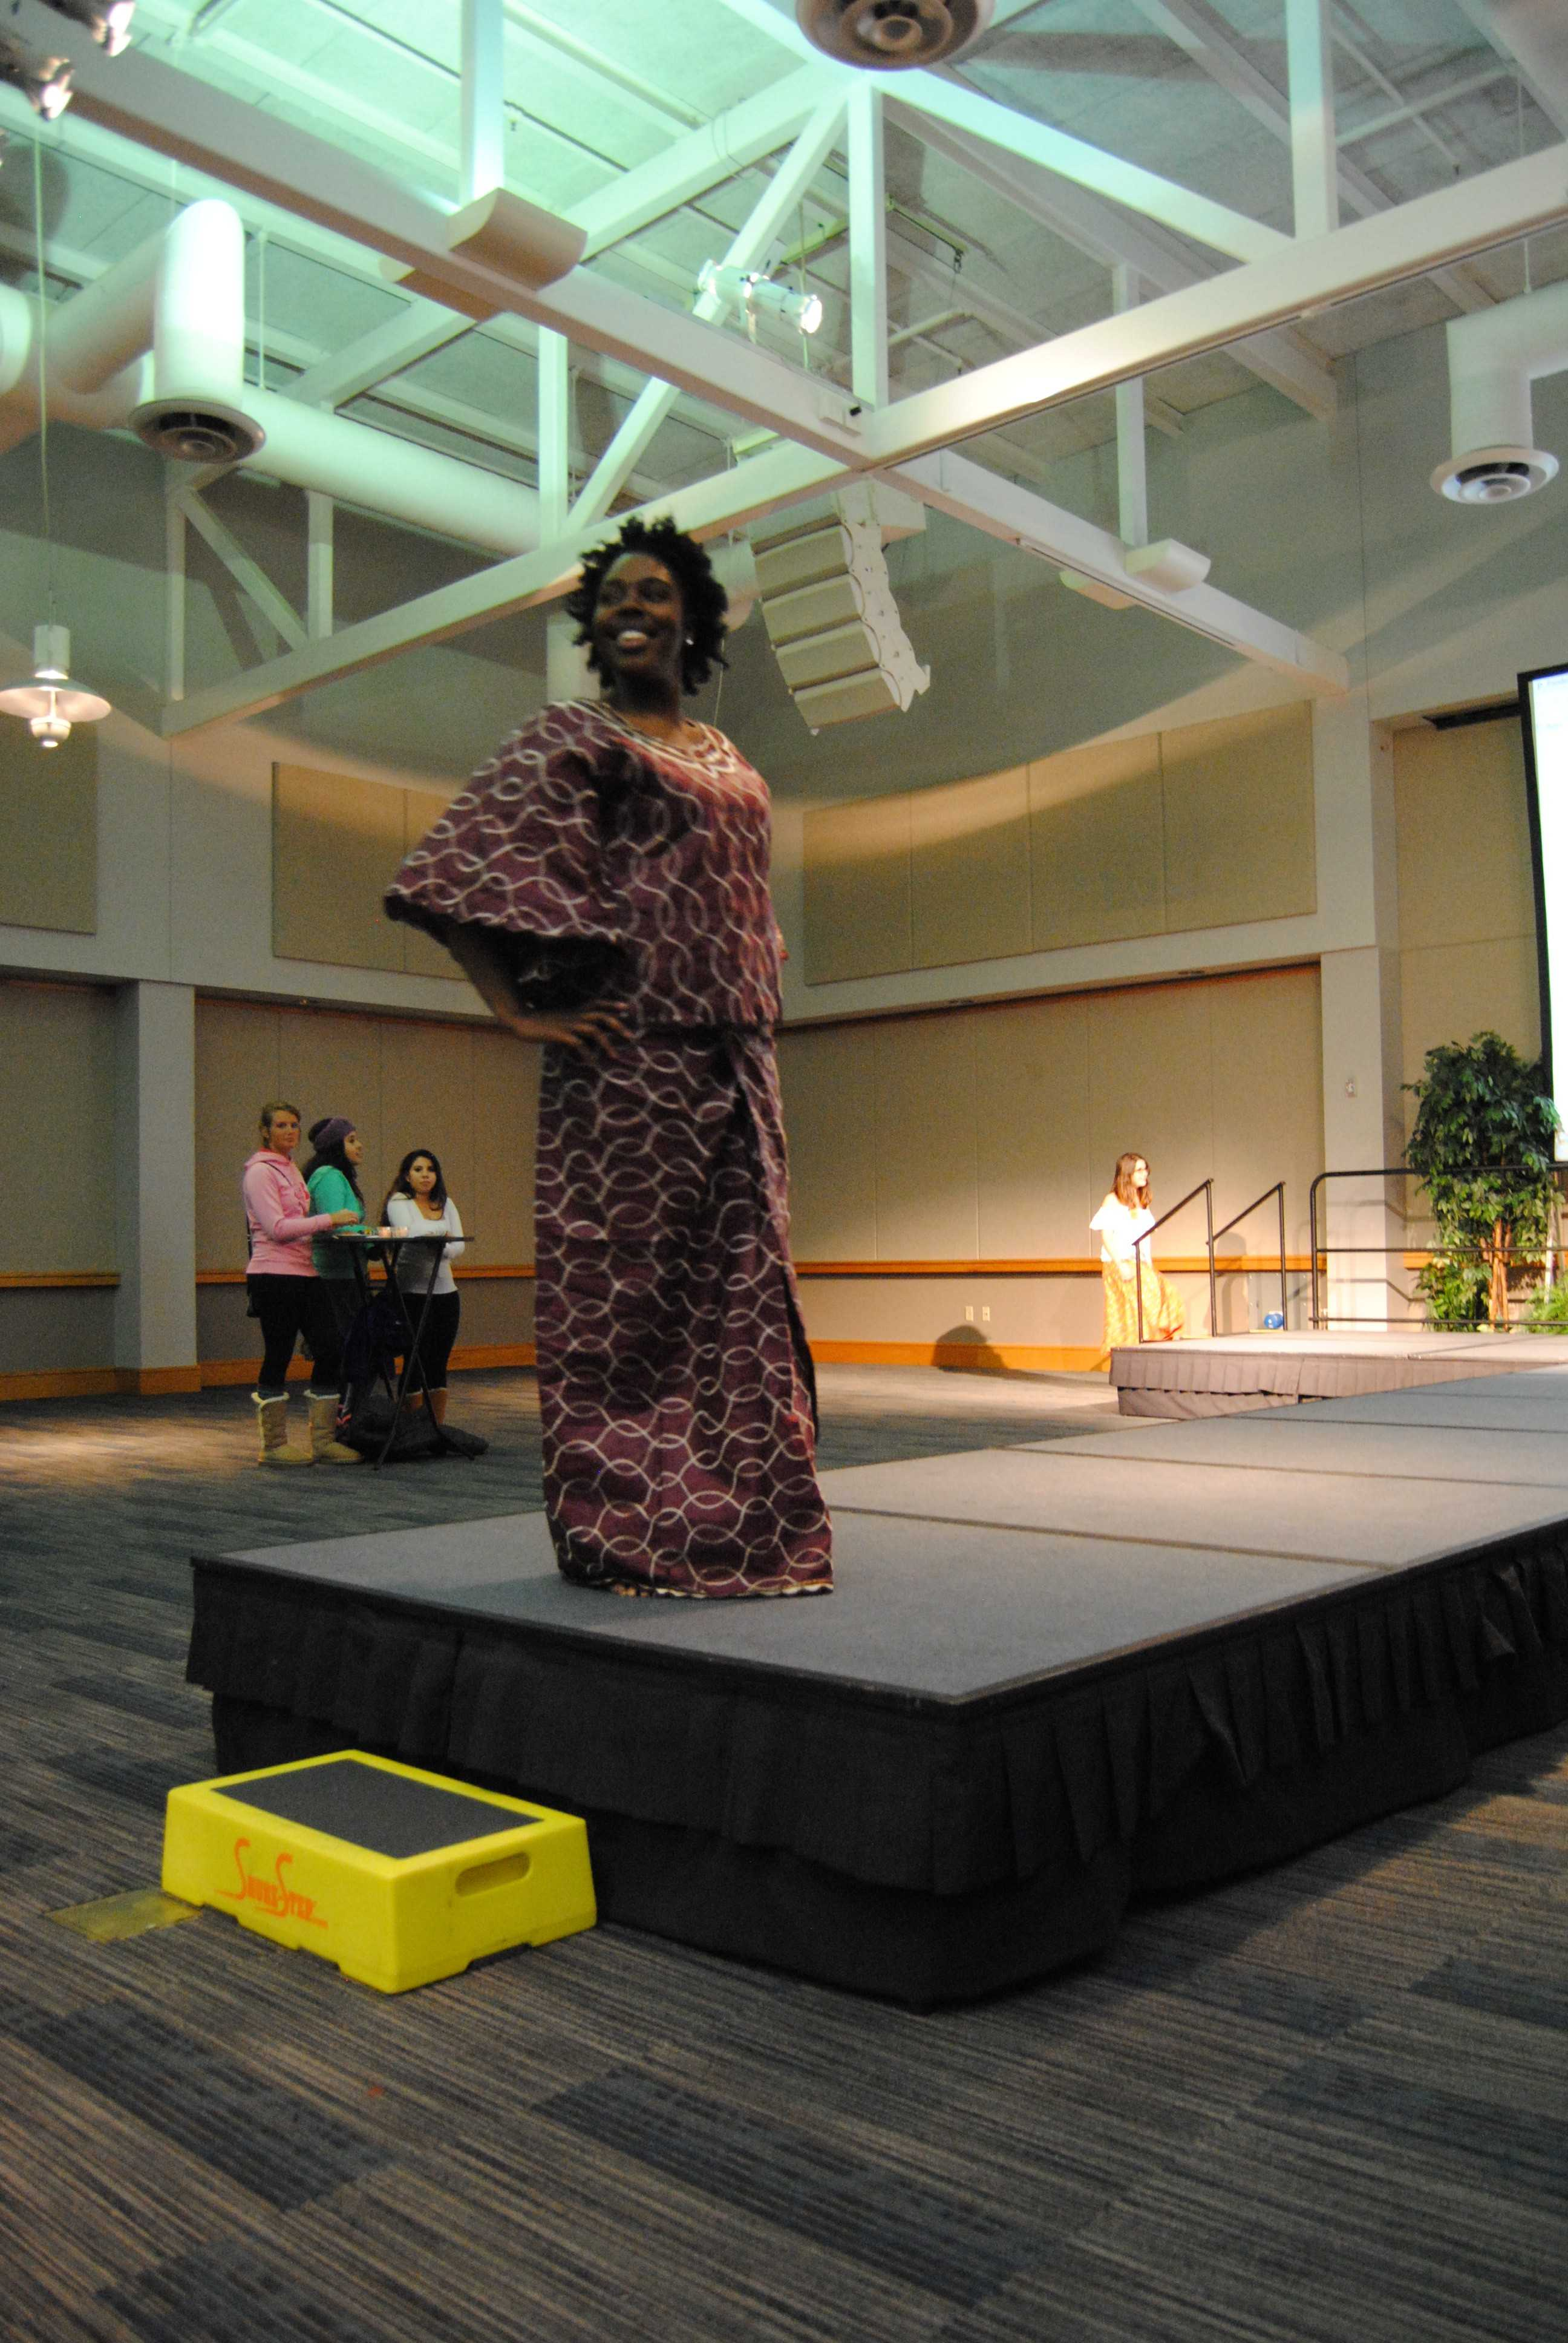 Senior psychology major Ariel Crenshaw poses in her hand-made dress from Ghana. Photo by Alyssa Smith/The Shield